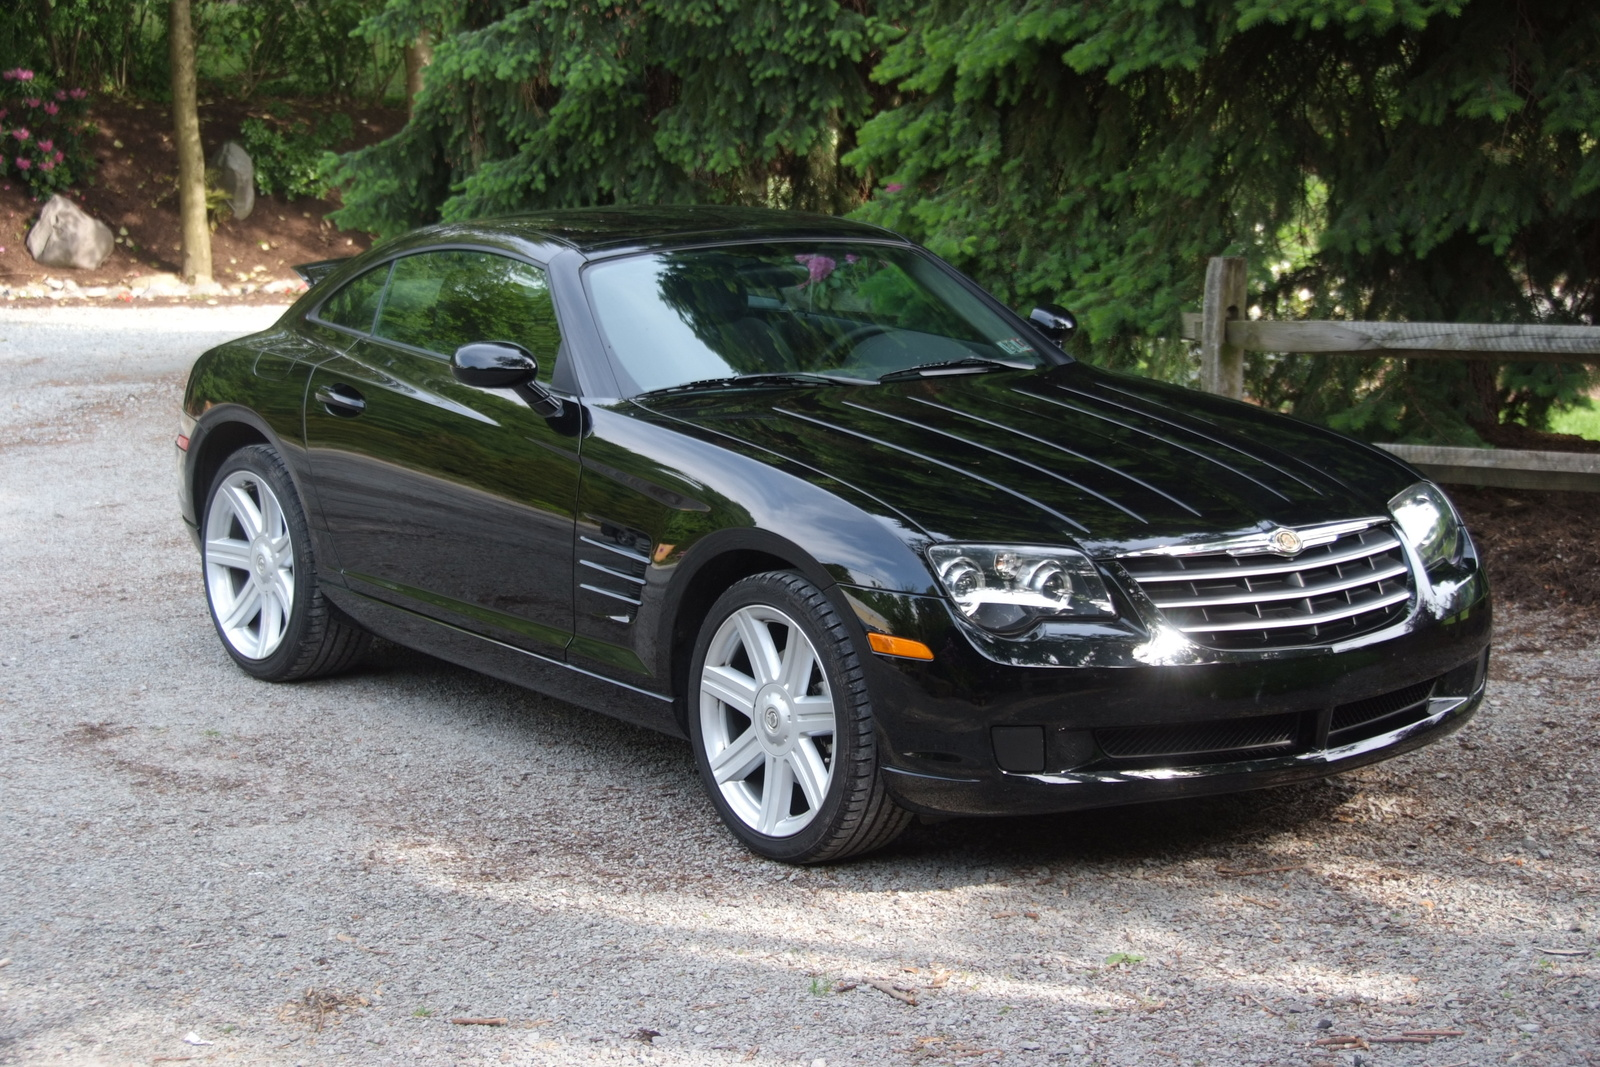 2006 Chrysler Crossfire Pictures C8209 pi17103752 on chrysler prowler car